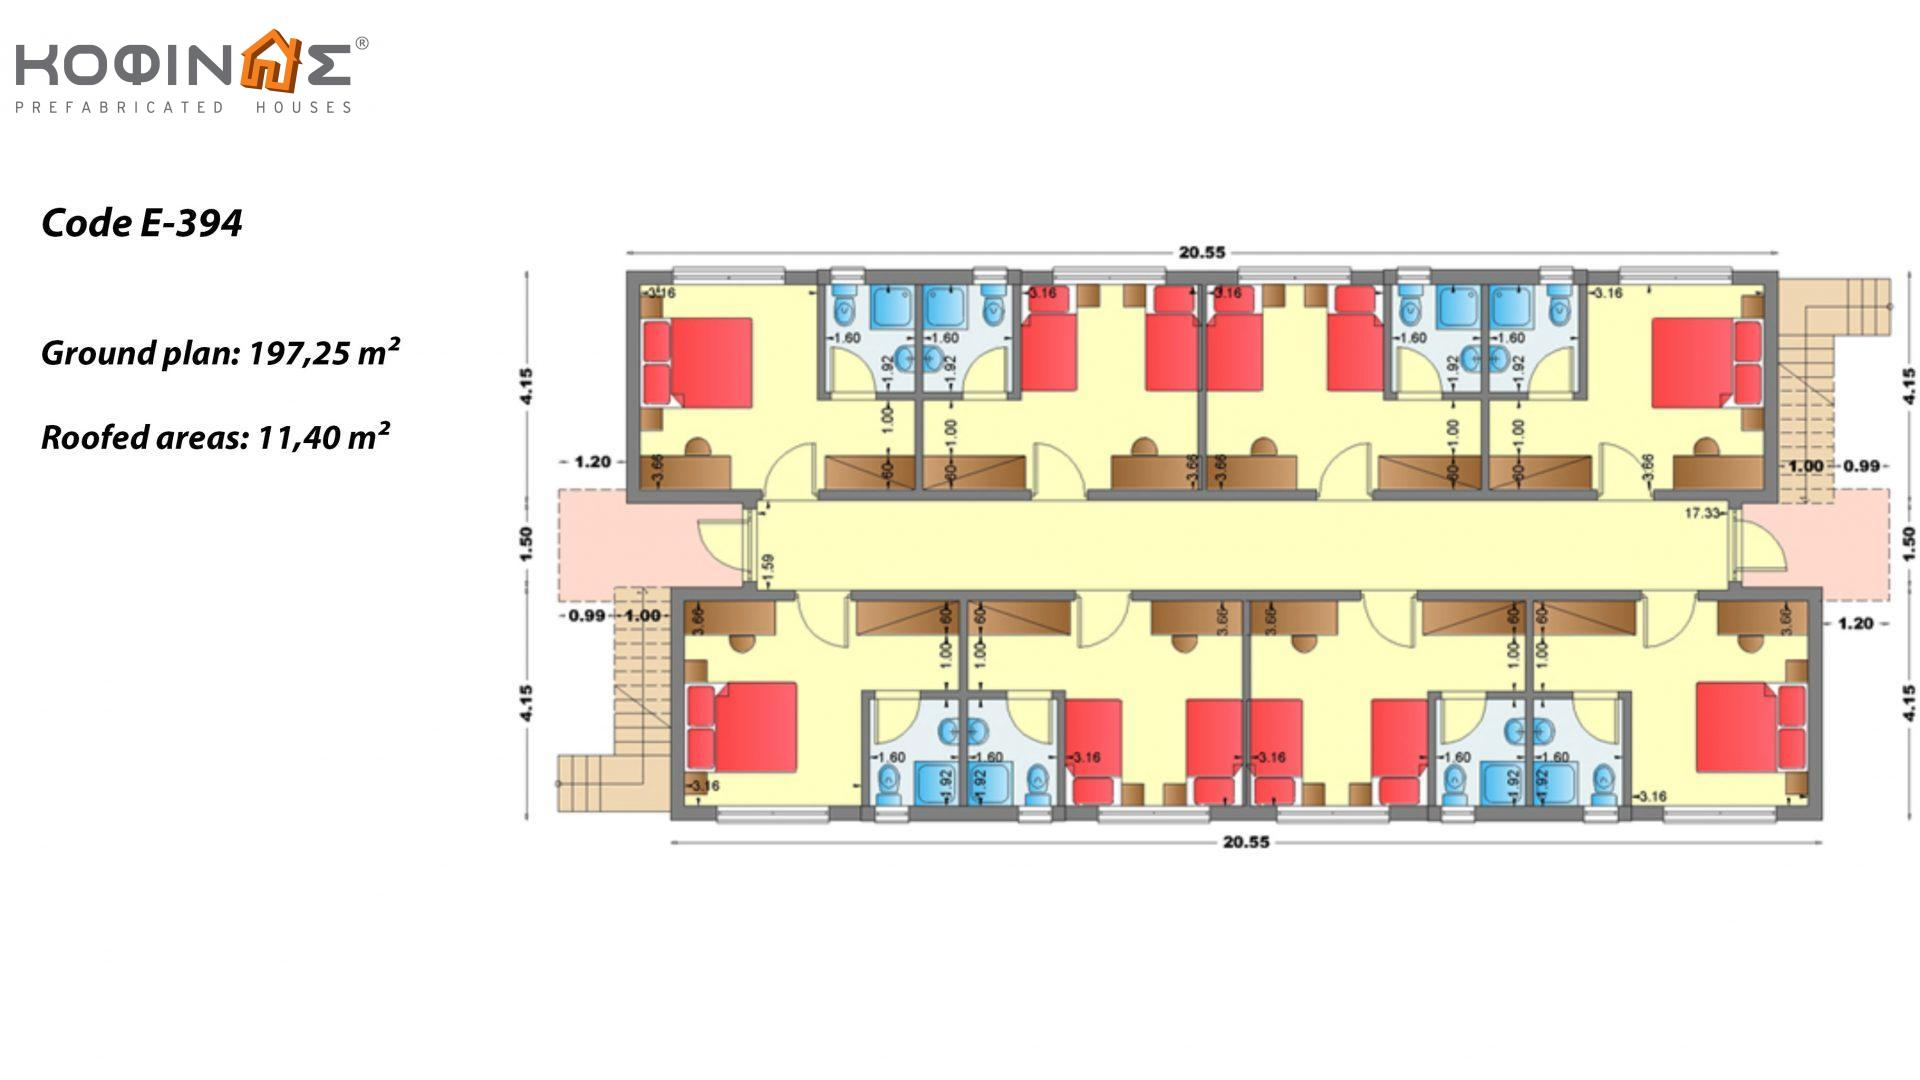 2-story Motel E-394, total space of 394,50 m²,roofed areas 22.80 m²